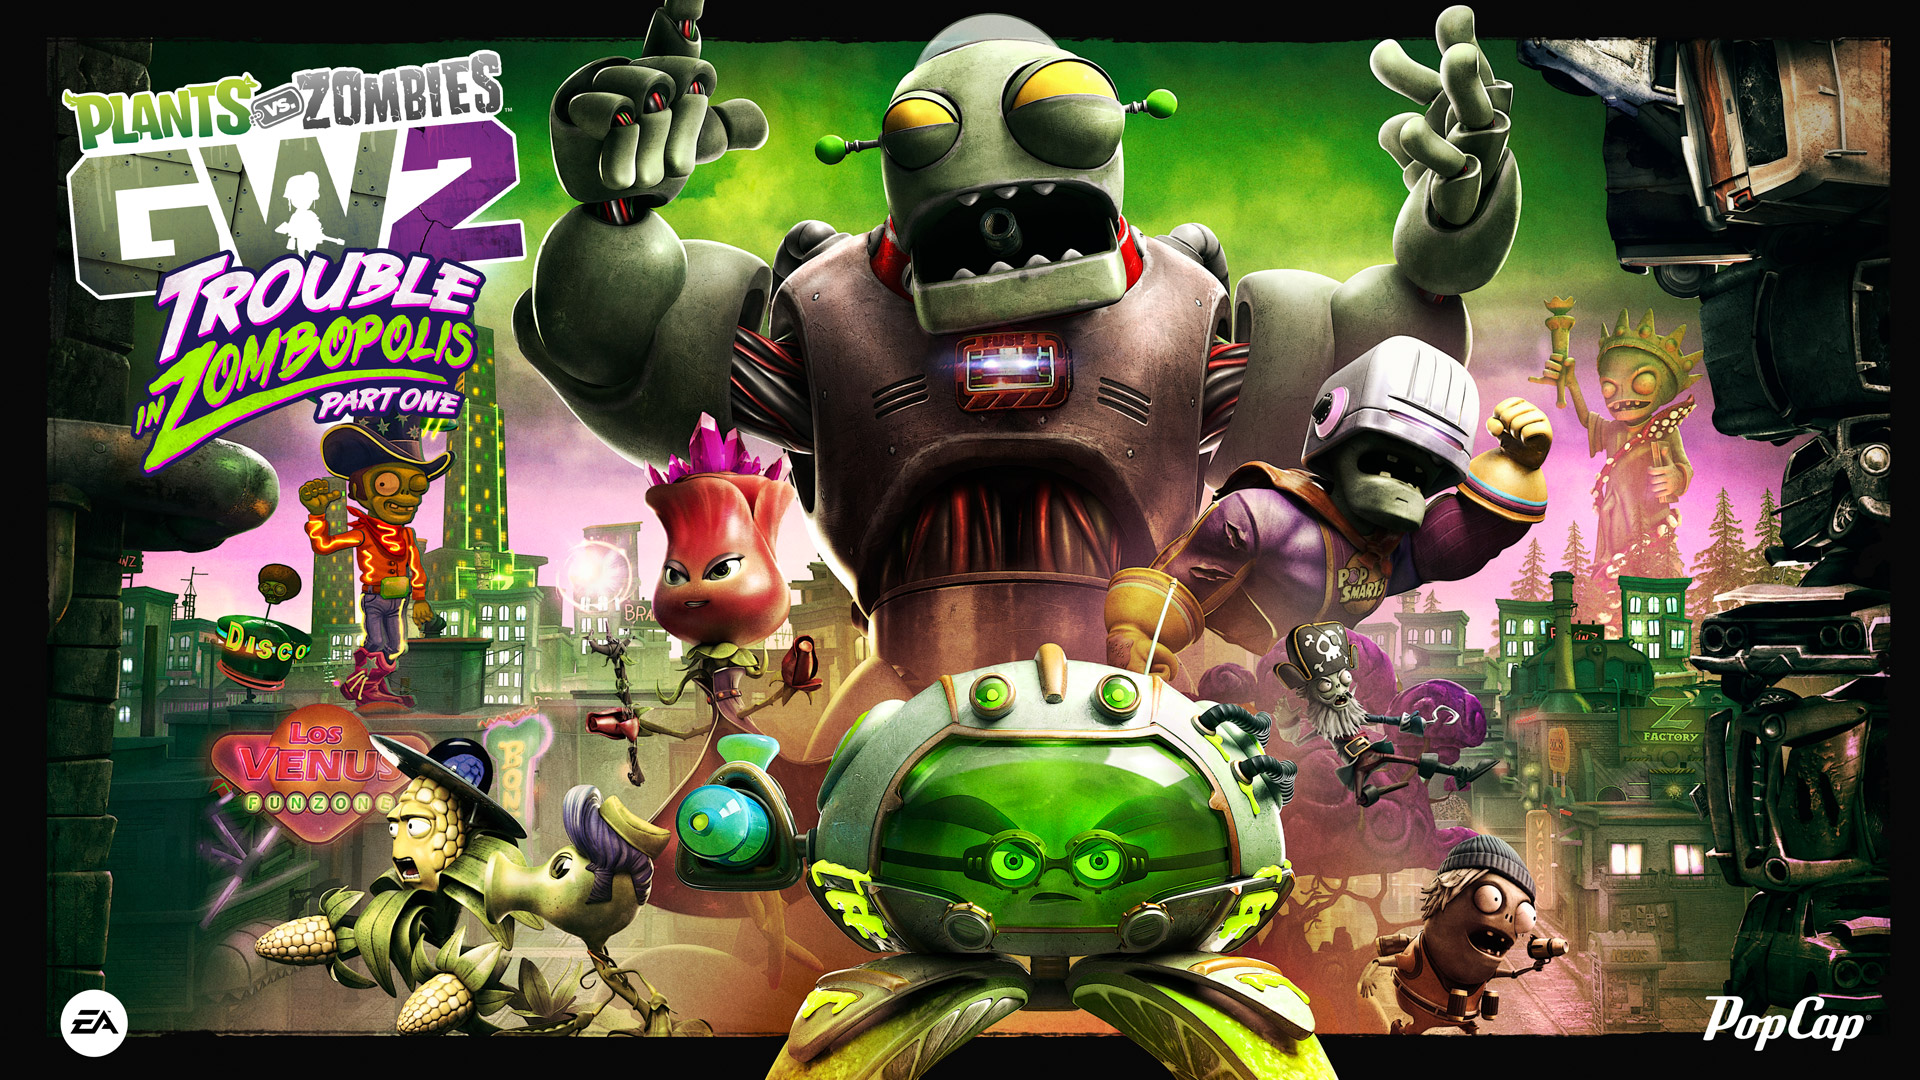 Trouble in zombopolis part one content update features Plants vs zombies garden warfare 2 event calendar